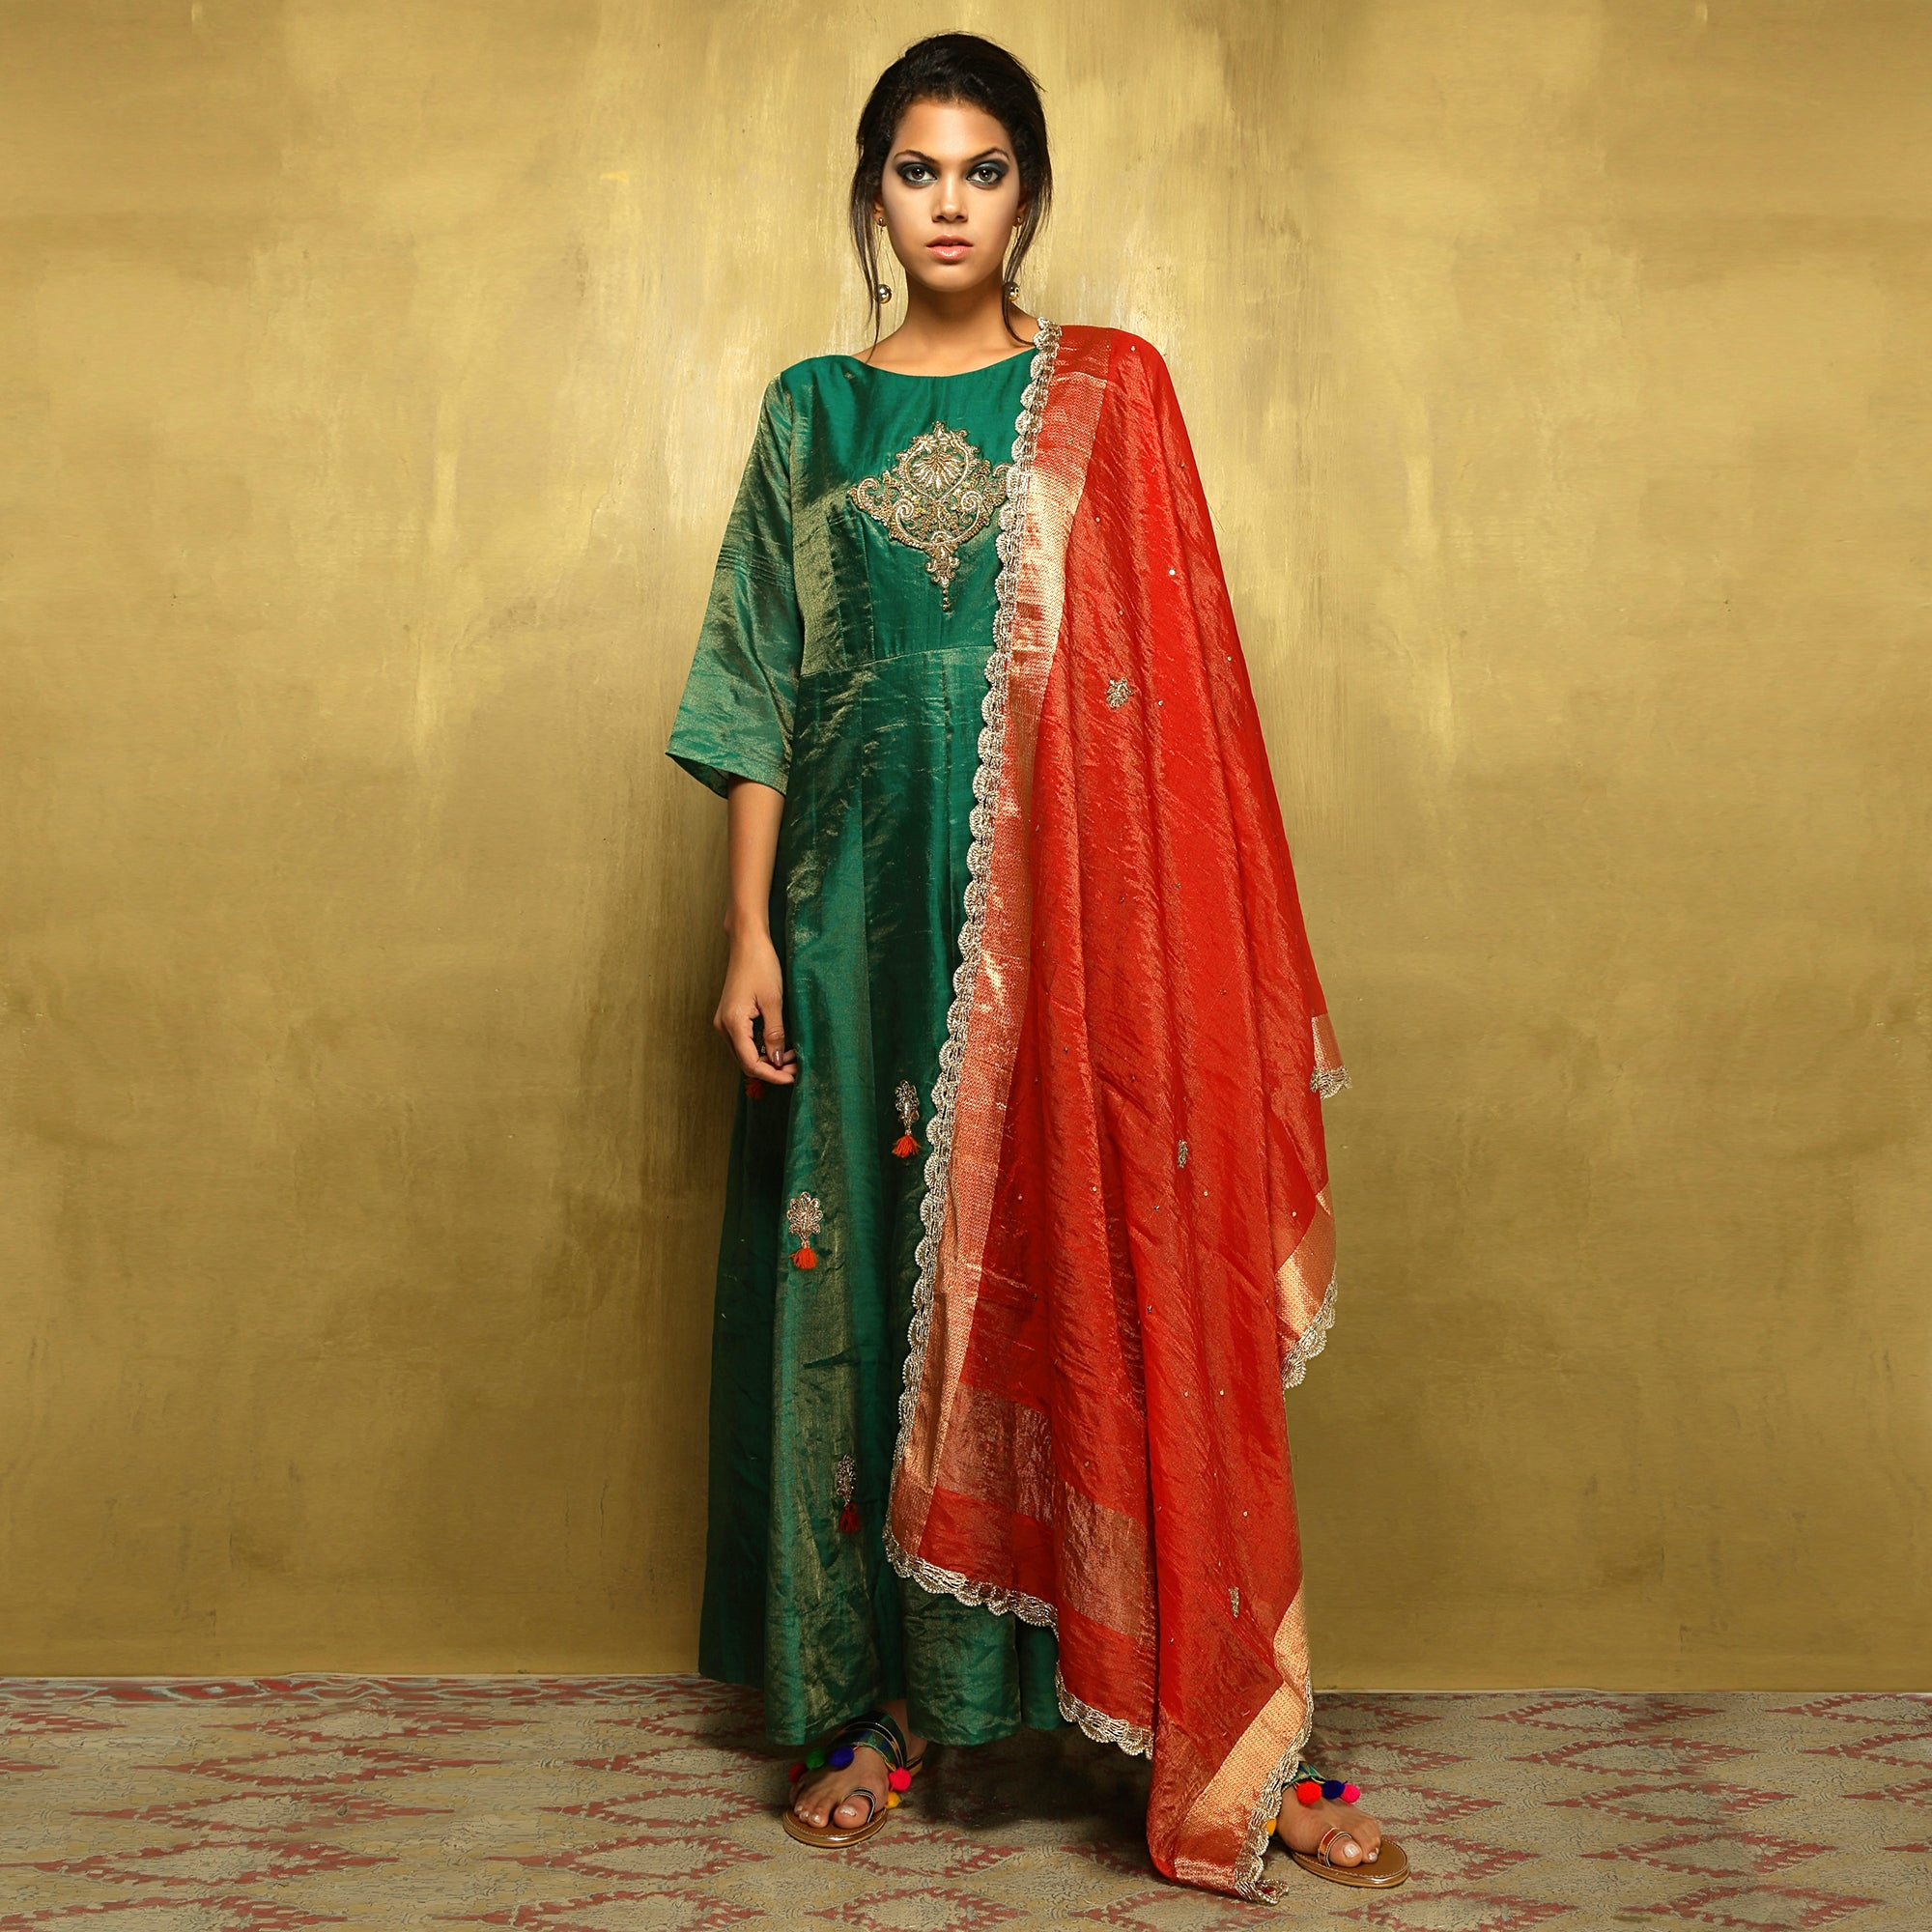 Stuti Anarkali - Bottle Green Tissue with Red Dupatta